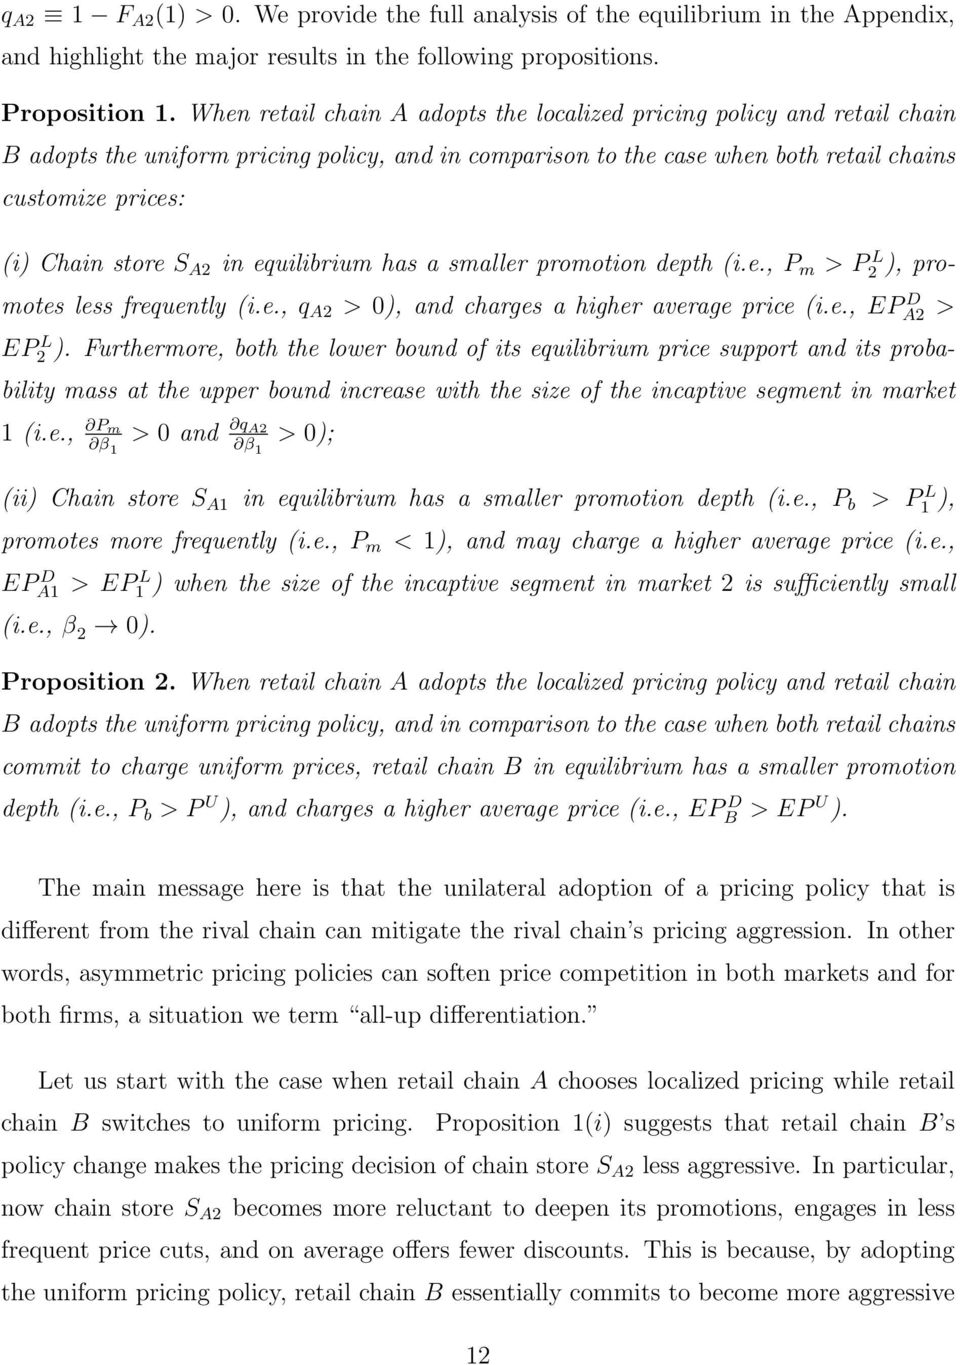 A2 in equilibrium has a smaller promotion depth (i.e., P m > P L 2 ), promotes less frequently (i.e., q A2 > 0), and charges a higher average price (i.e., EP D A2 > EP L 2 ).